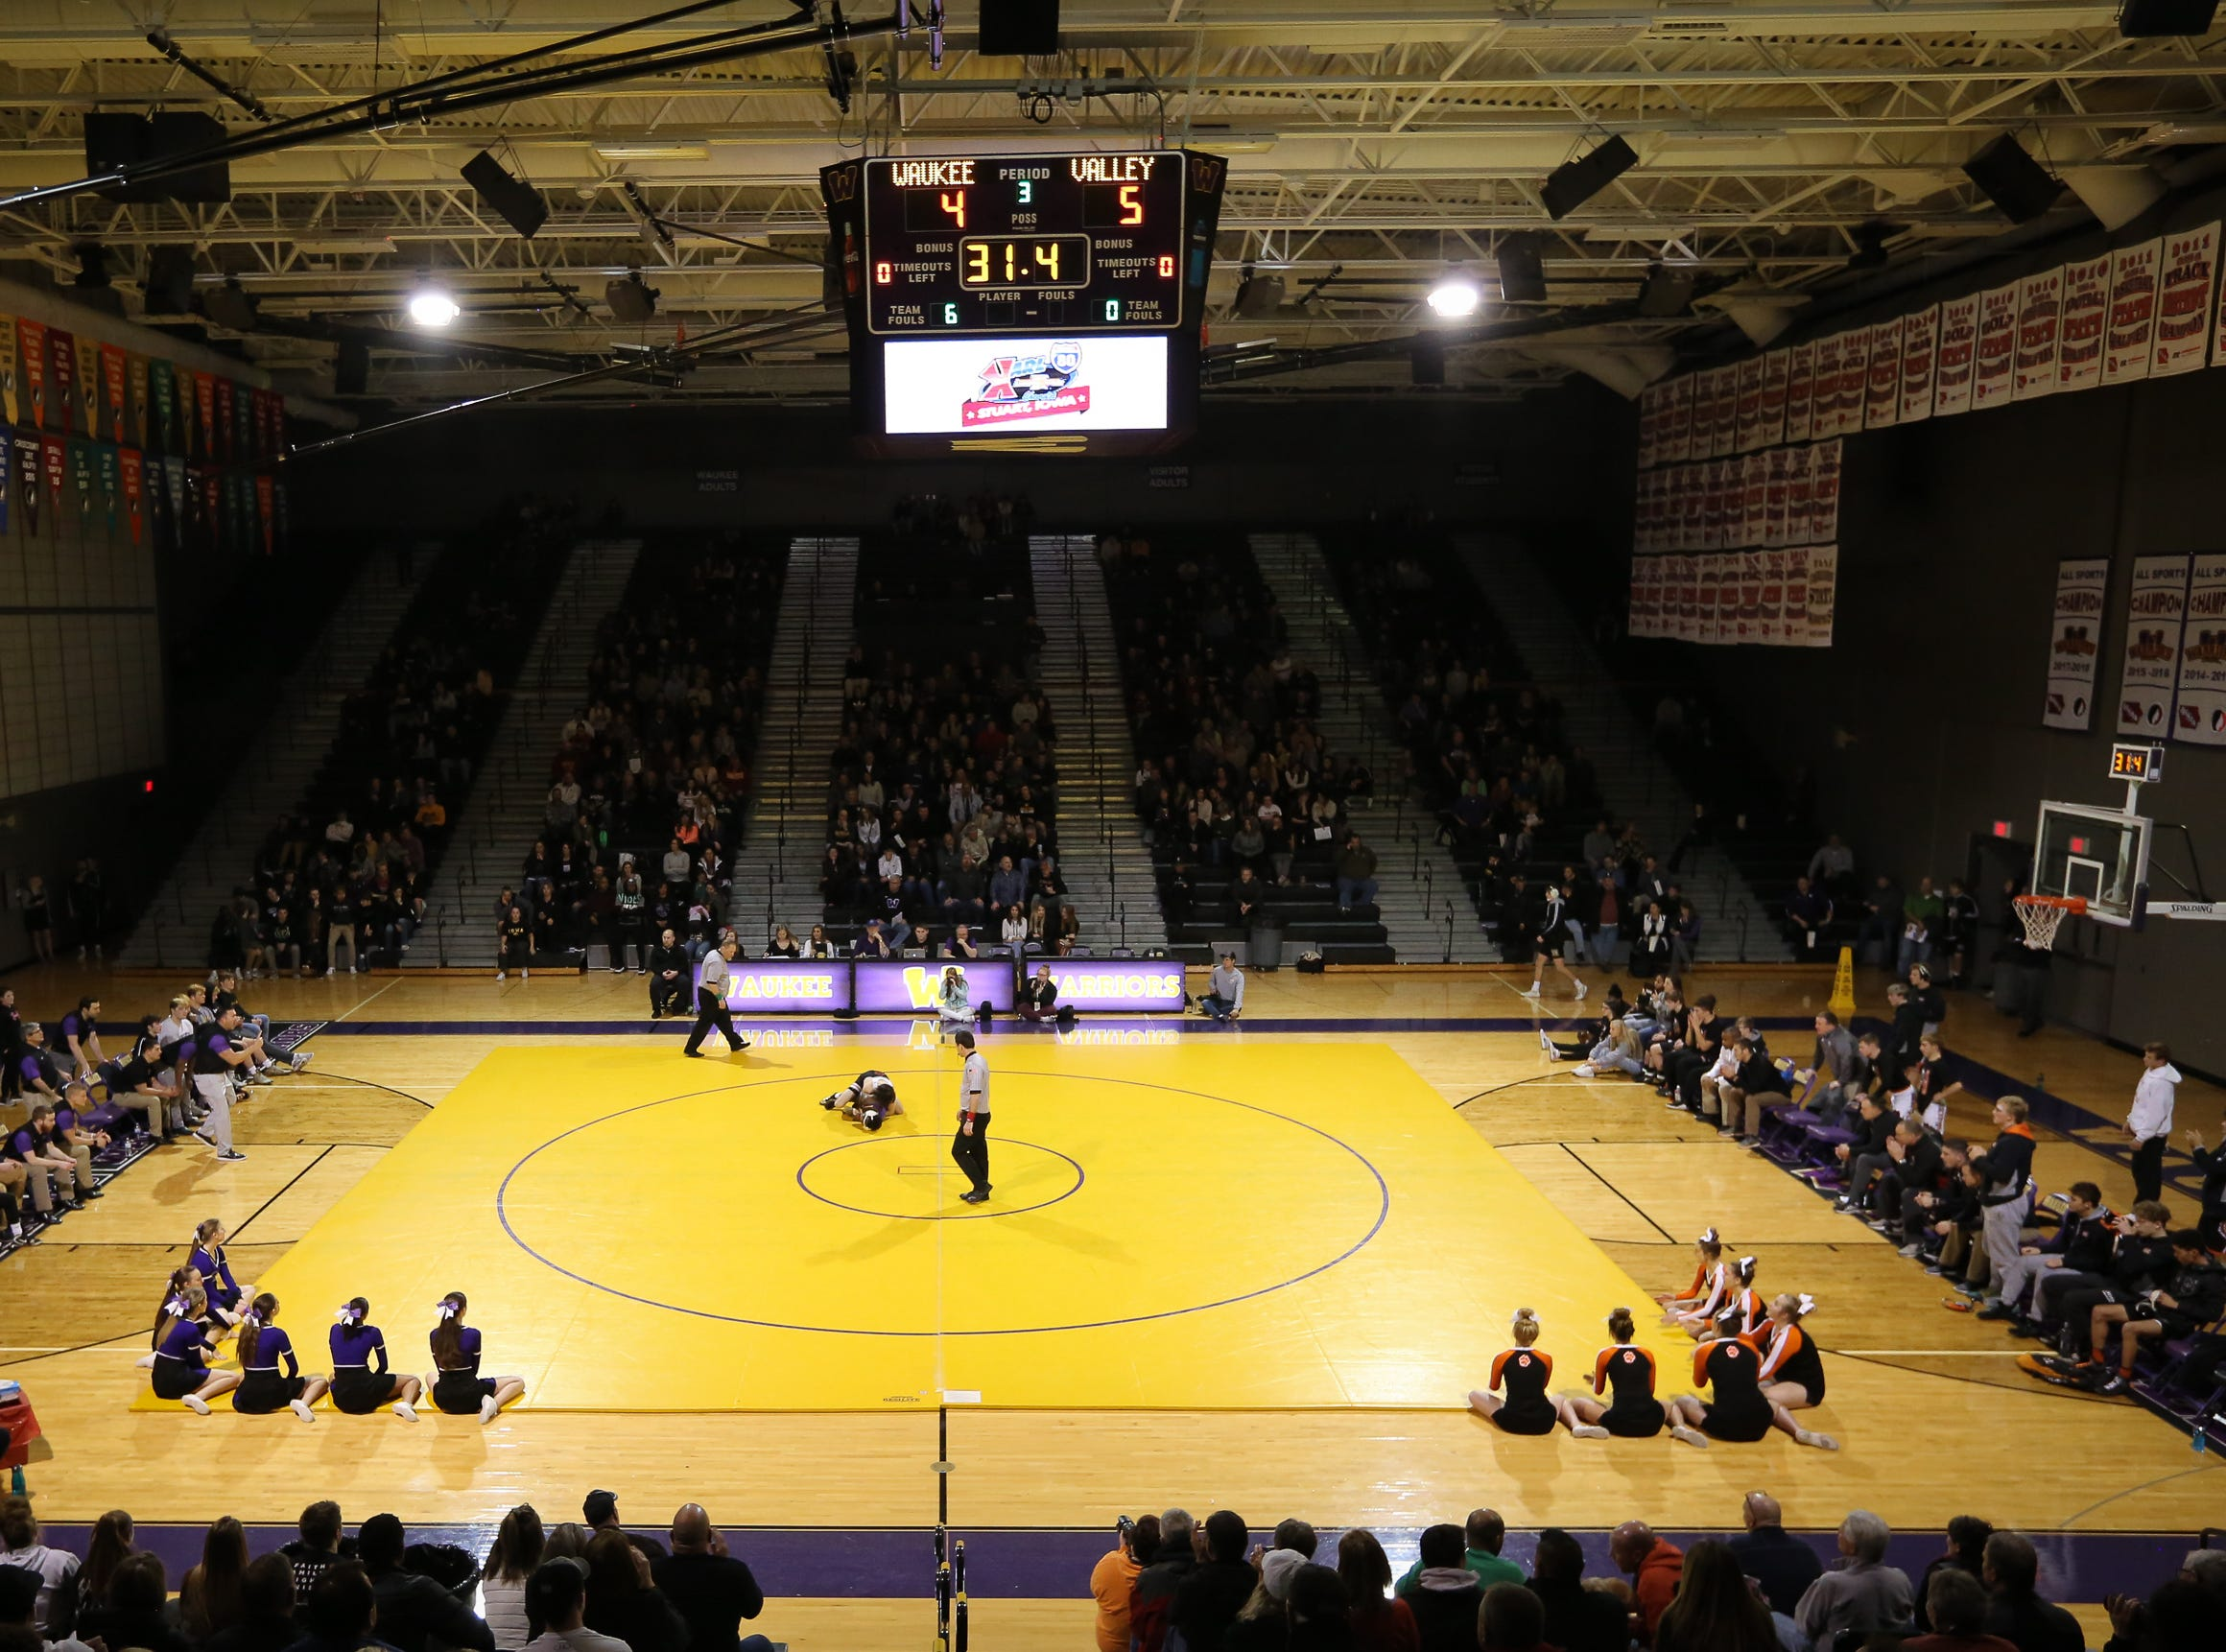 A general view of the Waukee High School gym during a high school wrestling meet between the Valley Tigers and the Waukee Warriors at Waukee High School on Dec. 20, 2018 in Waukee, Iowa.